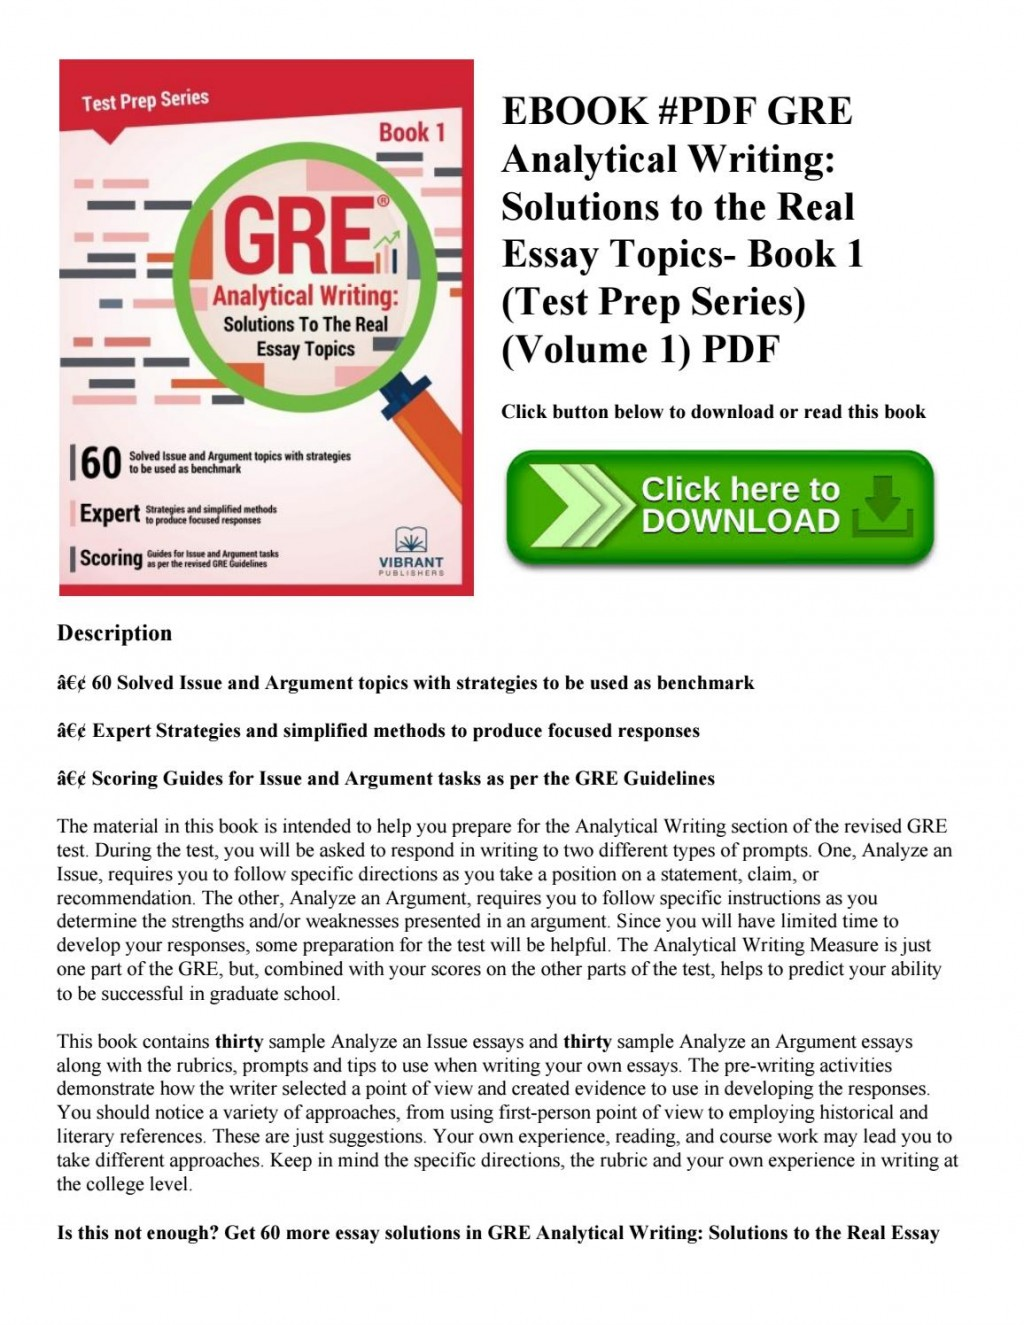 005 Essay Example Gre Book Pdf Page 1 Incredible Analytical Writing Large